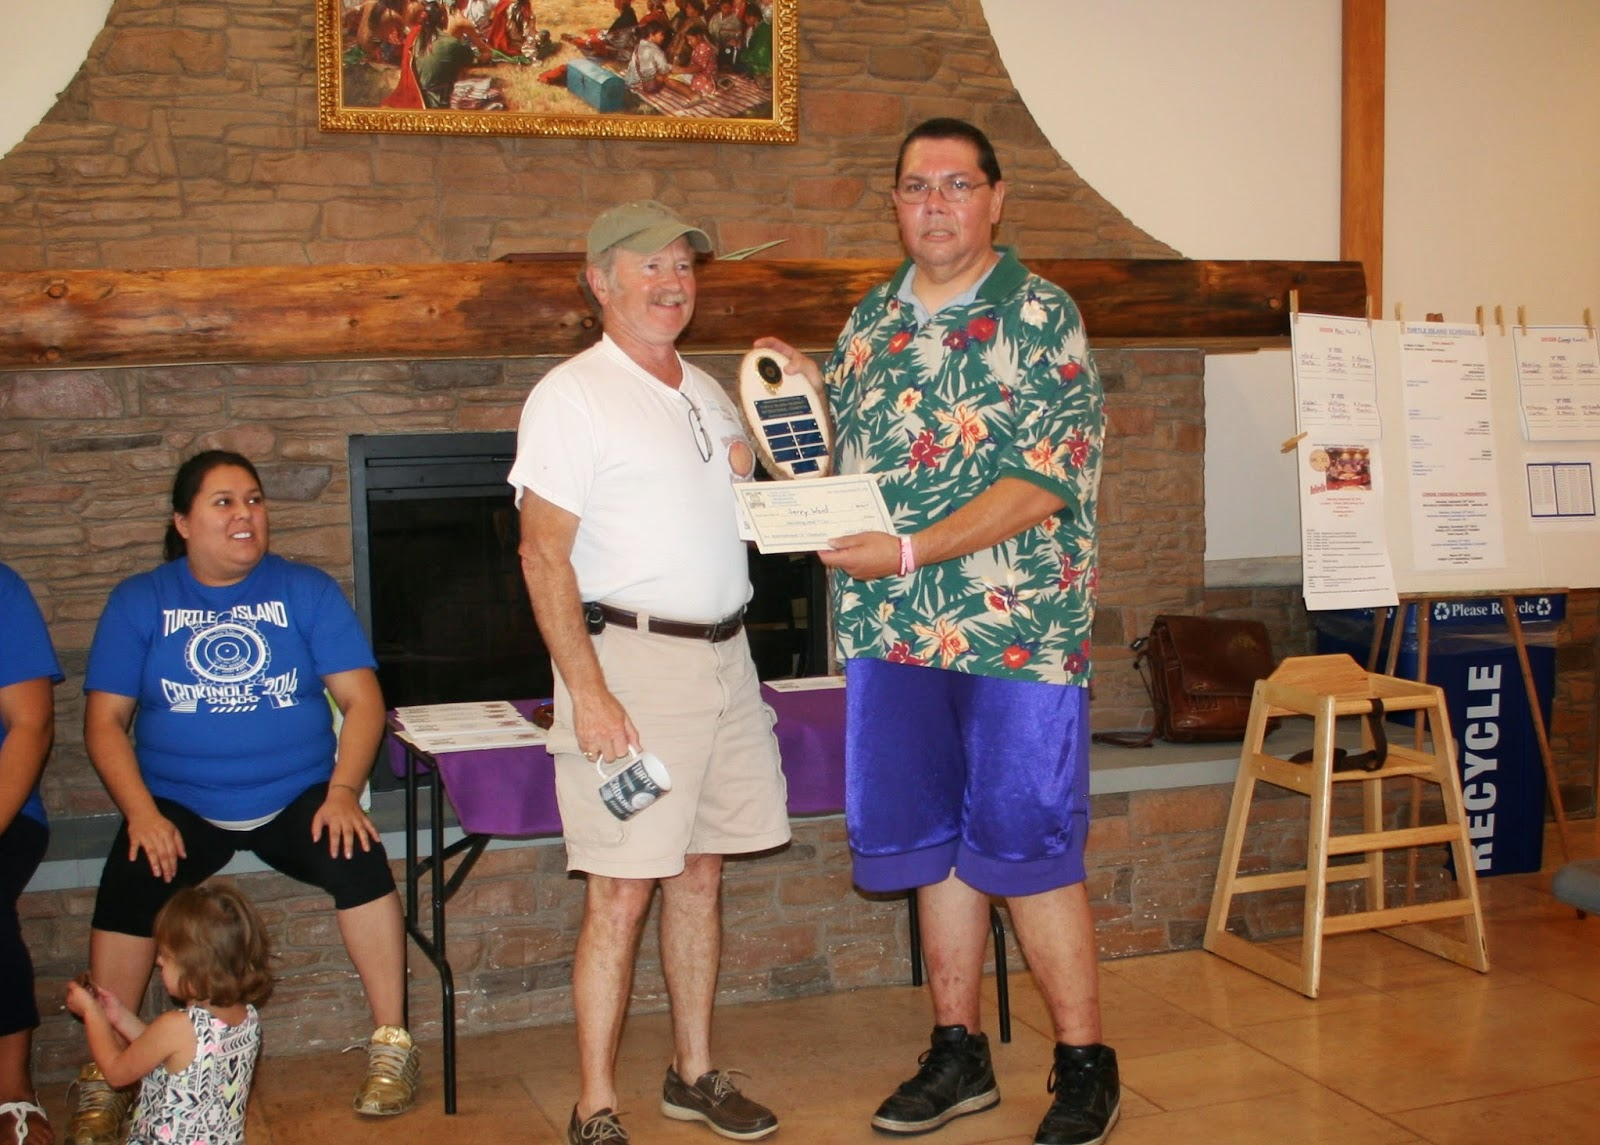 2014 Pool A Recreation Champion - Jerry Ward